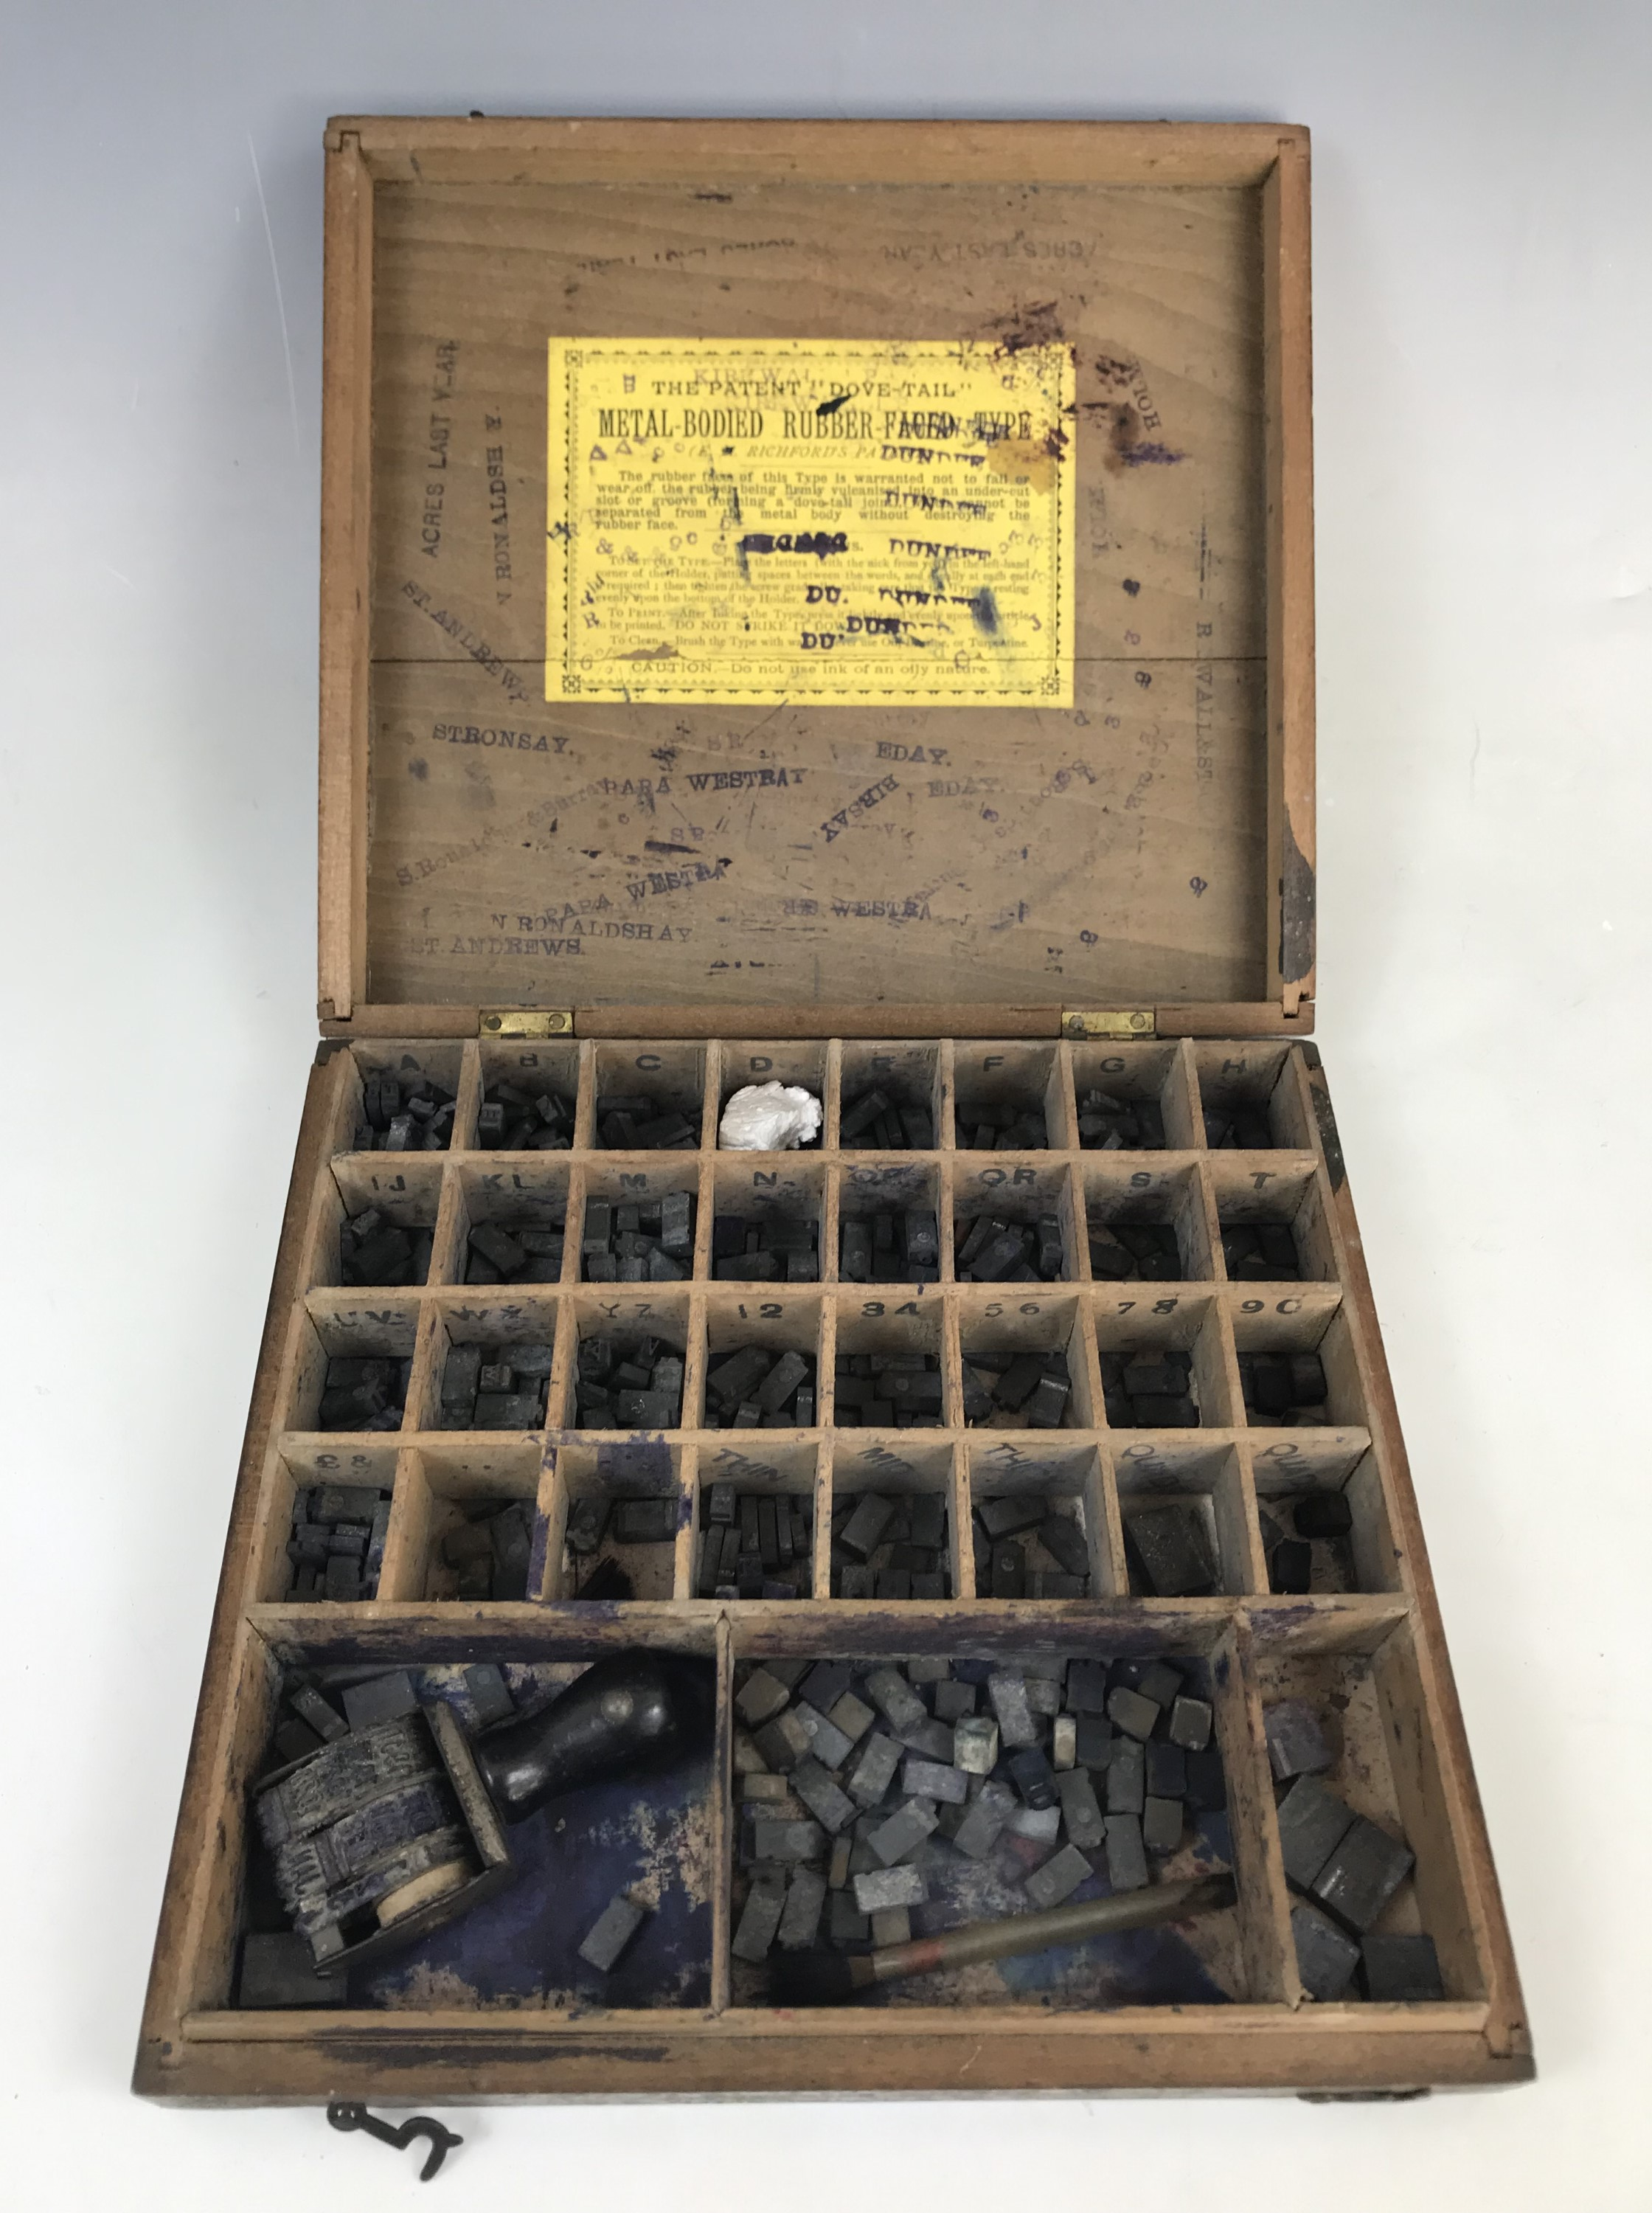 Lot 48 - A Victorian Richfords patent 'Metal-bodied rubber-faced' printing type set